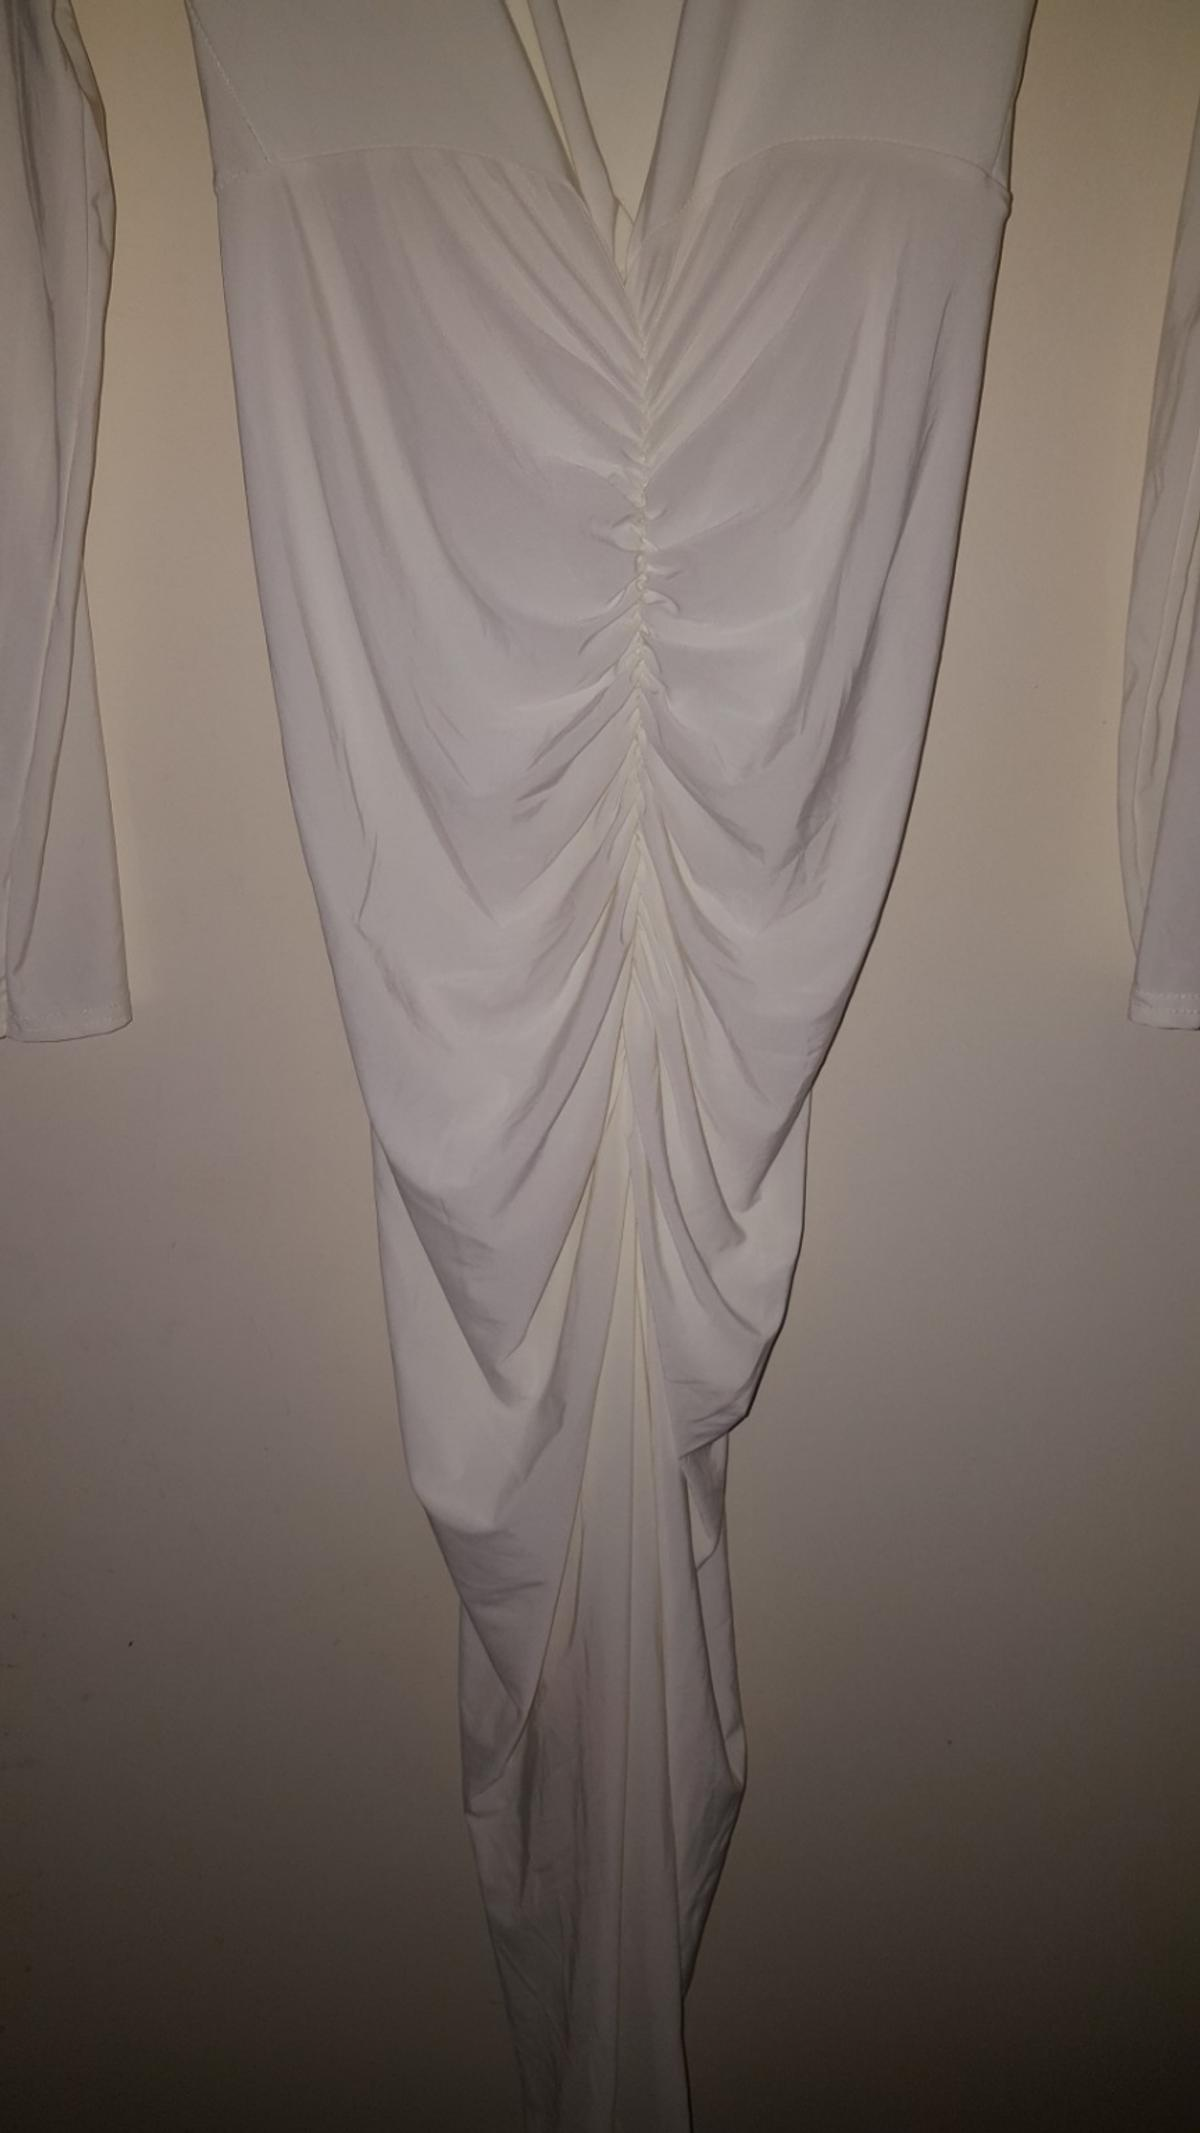 Pretty Little Thing Womens White Dress Size 10. V-Drop Front with Ruffle Bottom. Never been worn. Immaculate condition. Collection only - postage is an additional cost chargeable to buyer.